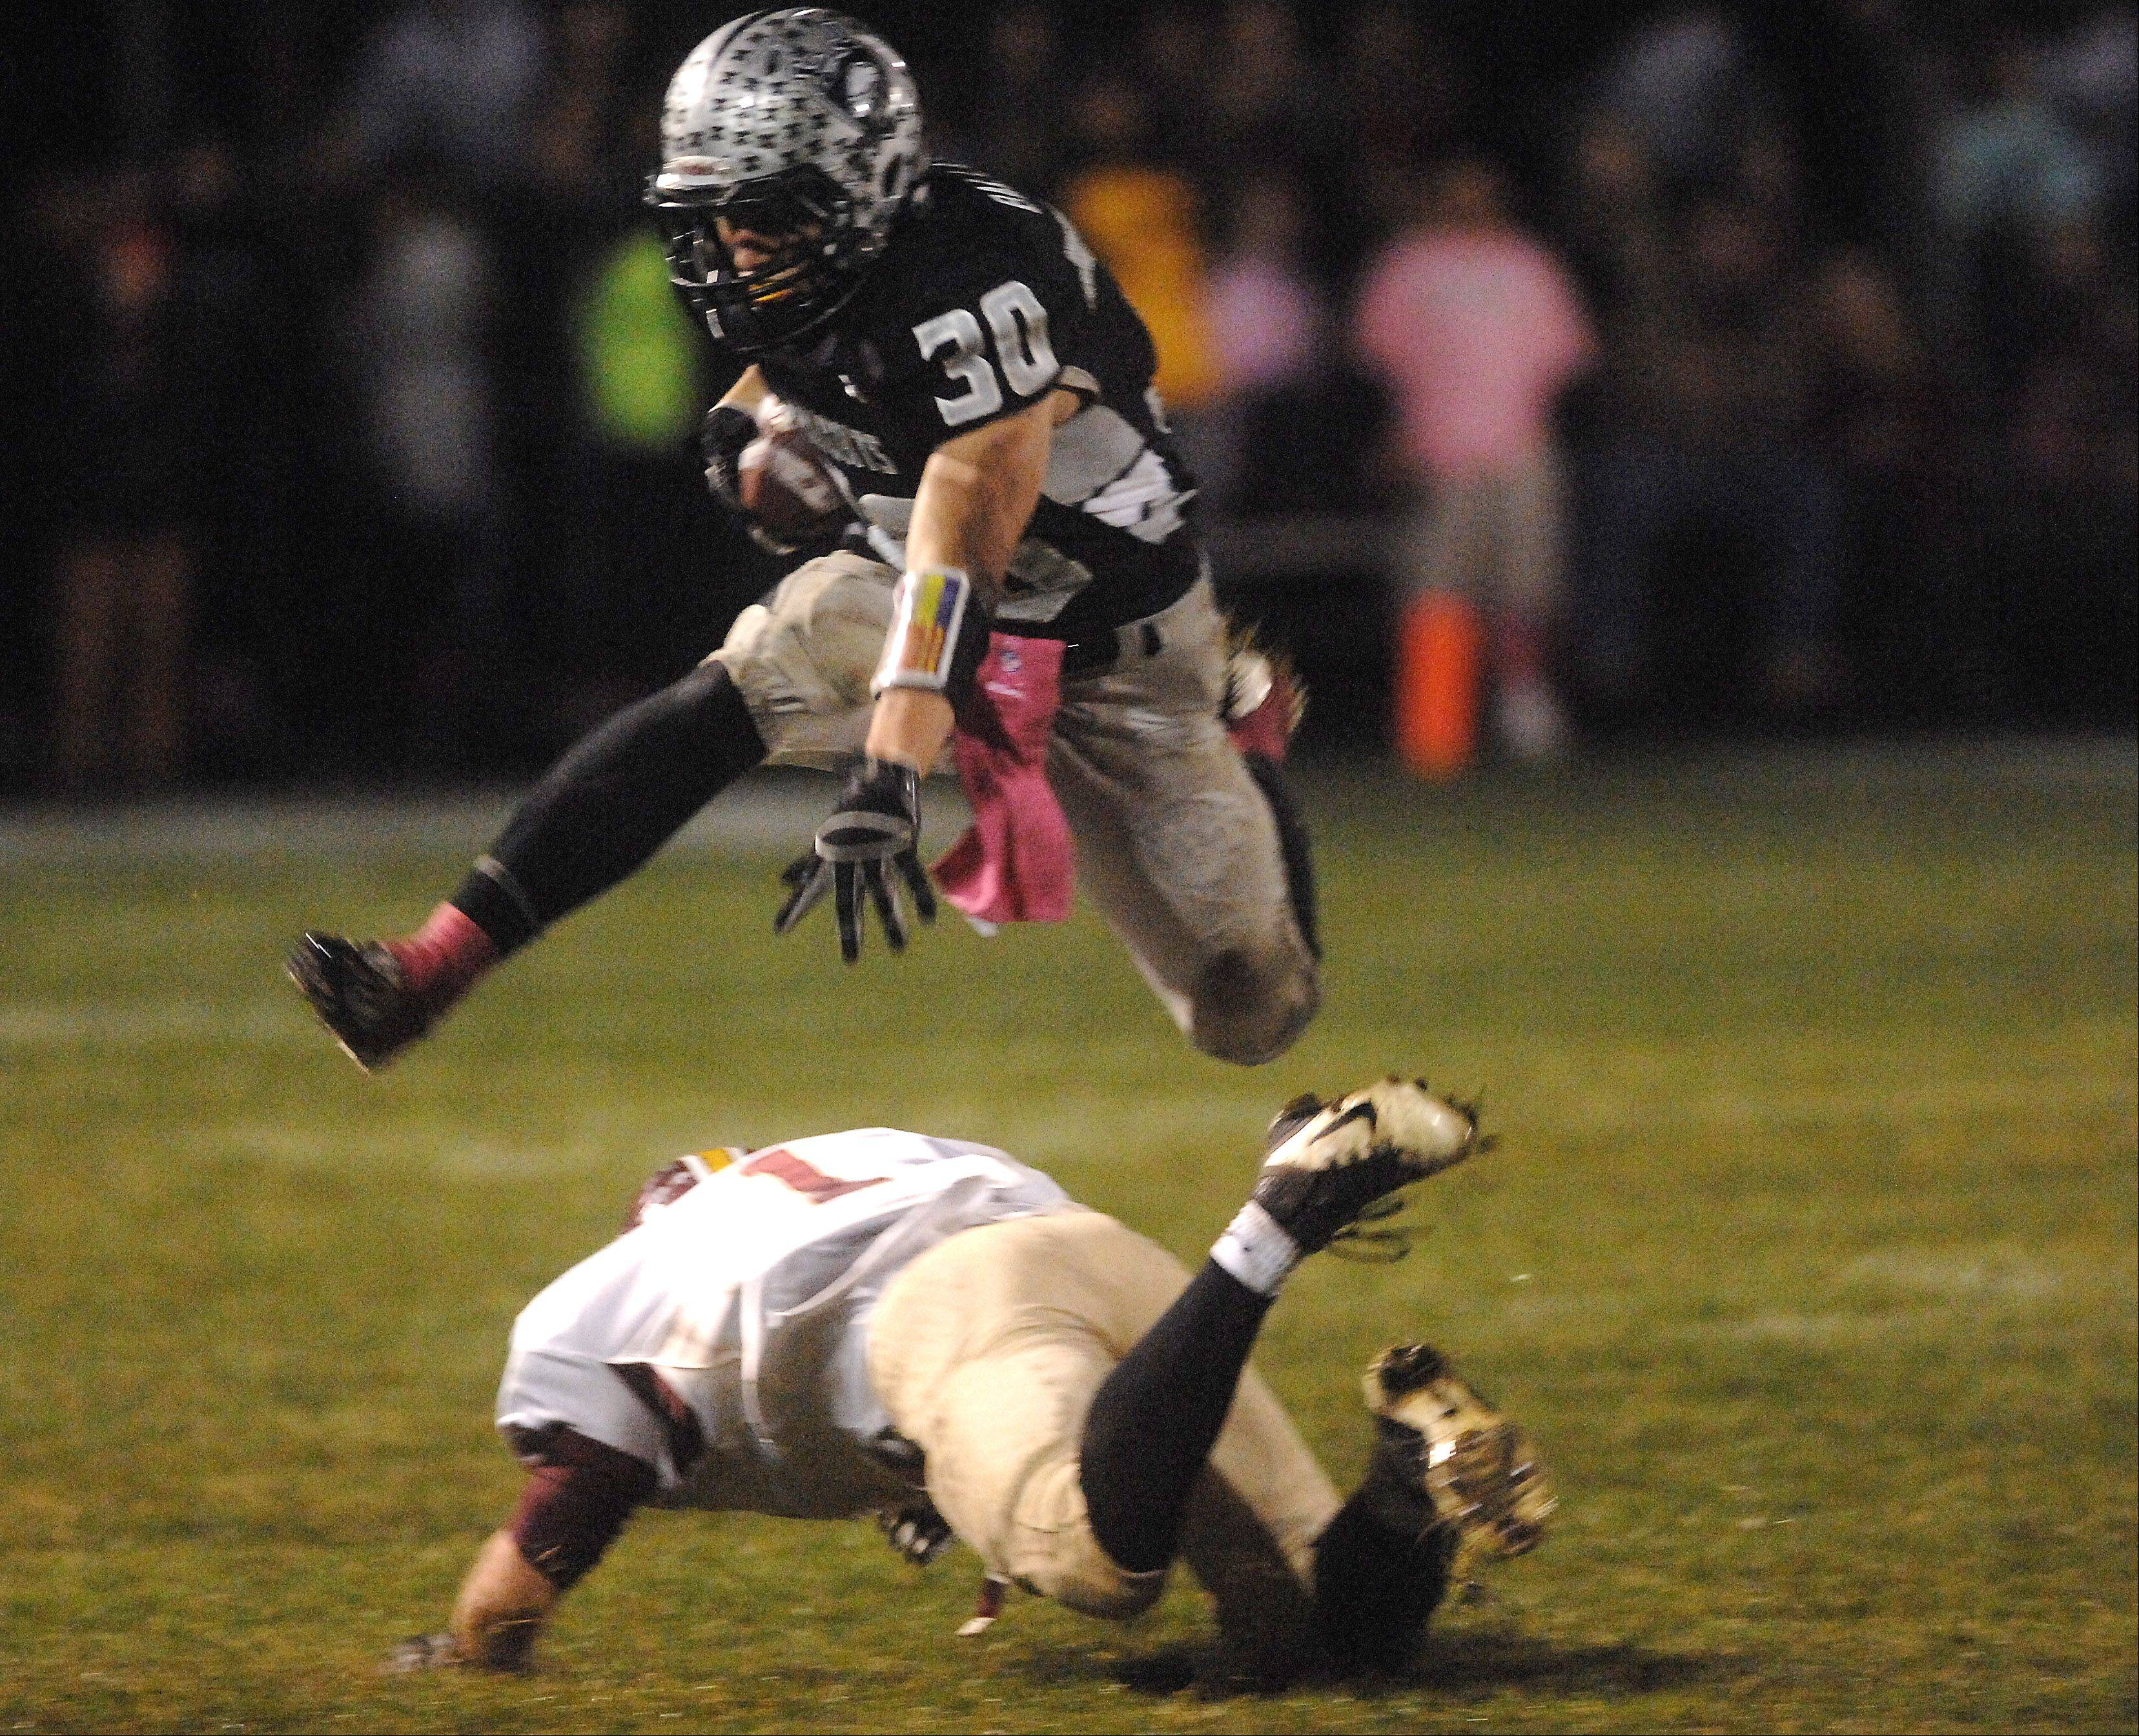 Late TD gives Kaneland conference title